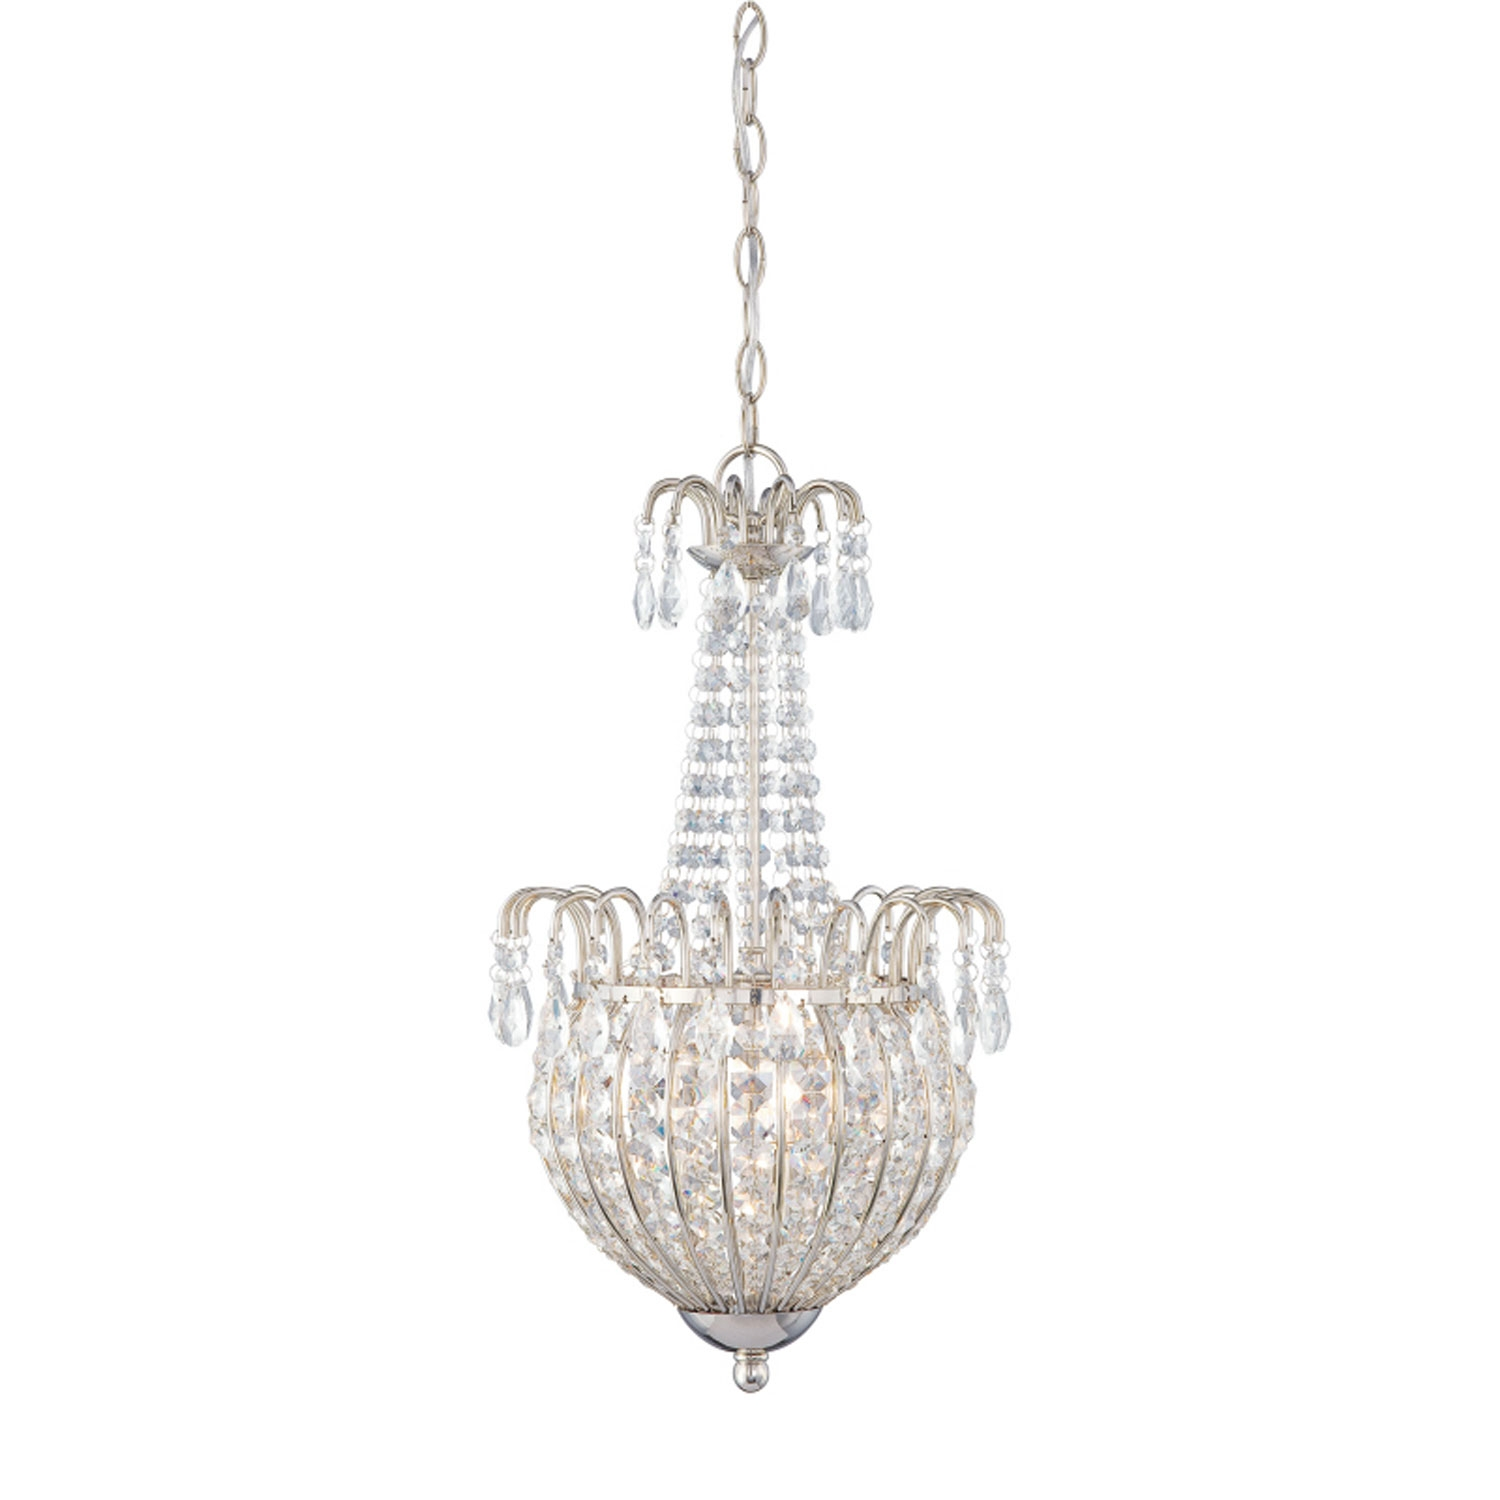 Choosing Chandeliers For A Traditional Kitchen Intended For Traditional Chandeliers (Image 7 of 15)